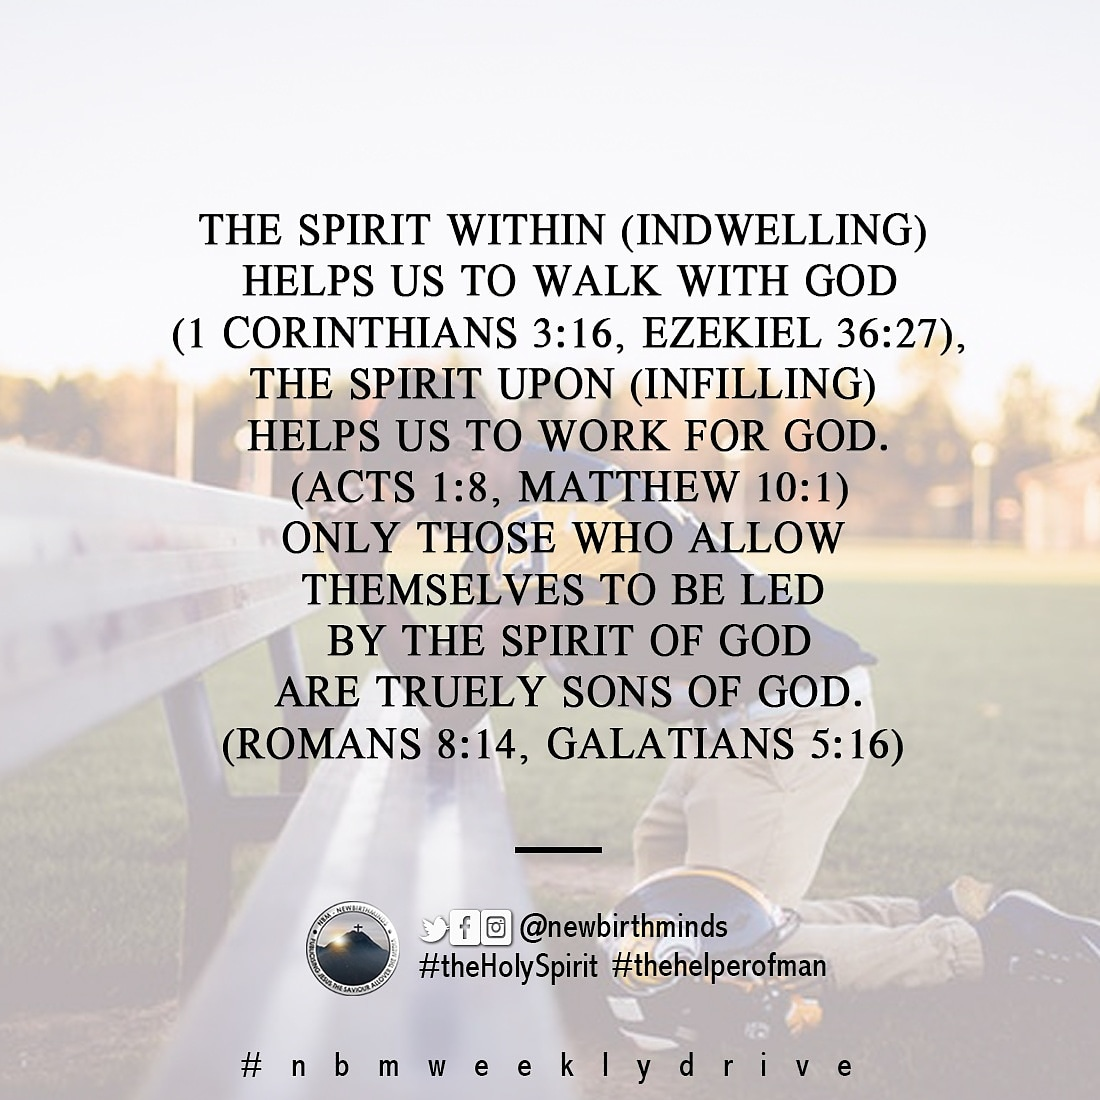 THIS WEEK DRIVE – THE SPIRIT WITHIN AND THE SPIRIT UPON